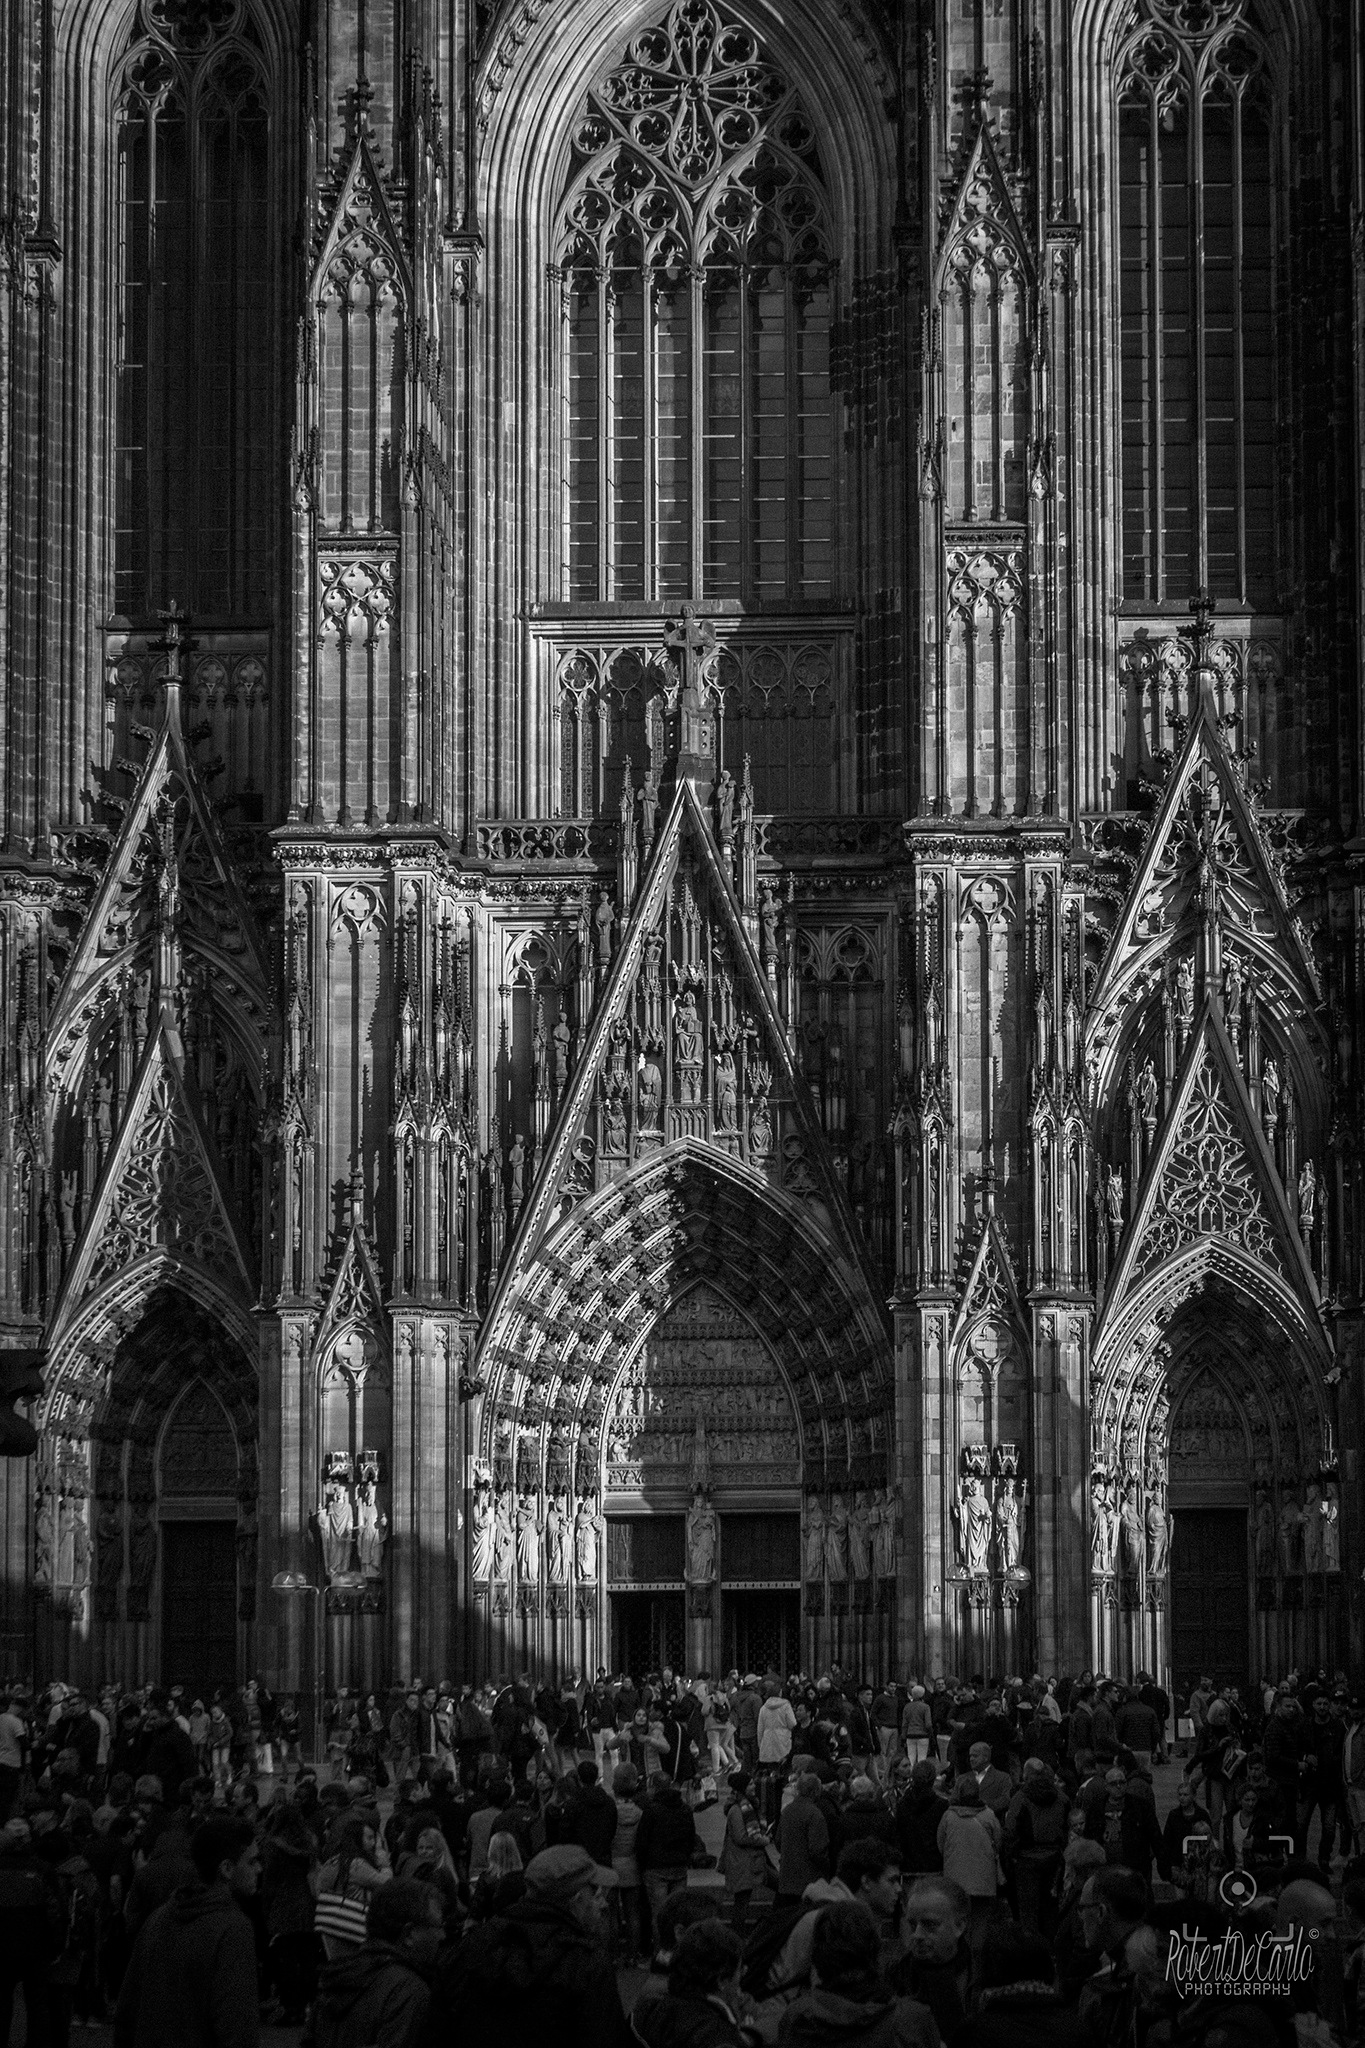 Koln Cathedral by Robert De Carlo